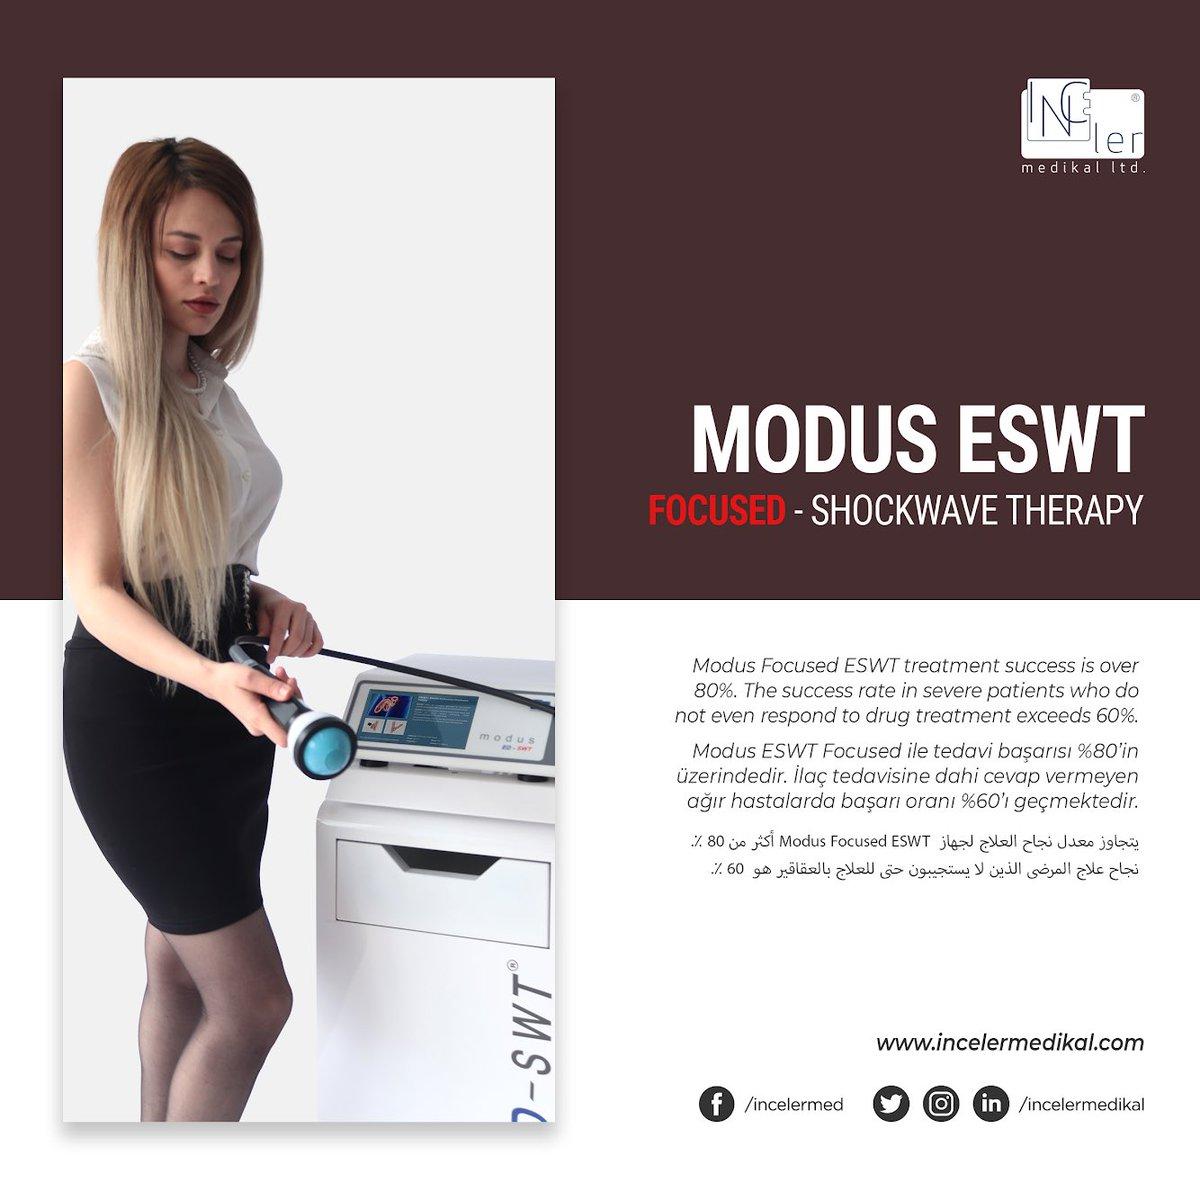 Modus Focused ESWT treatment success is over 80%. The success rate in severe patients who do not even respond to drug treatment exceeds 60%.  #shockwavetherapy #urology #shockwave #urologista #erectiledysfunction #üroloji #urologist #dysfunction #eswt #impotence #doctorpic.twitter.com/vYYX09CPZX